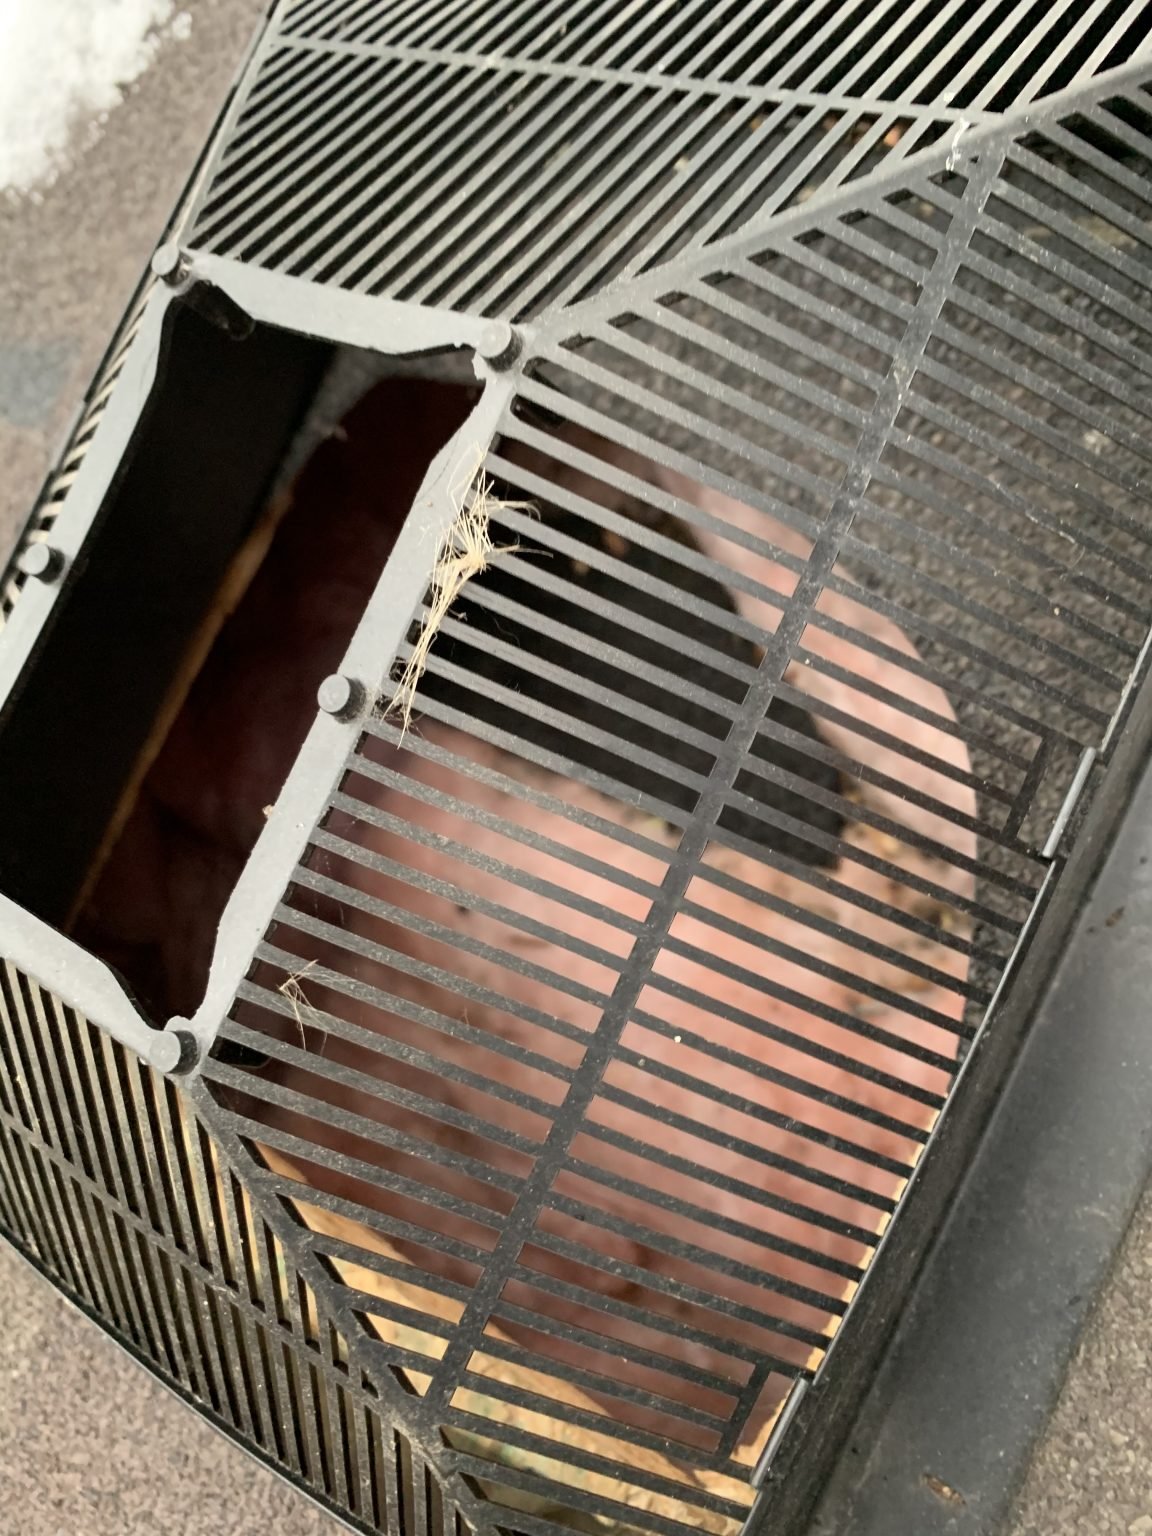 Rodent Fur In Vent Entry Point